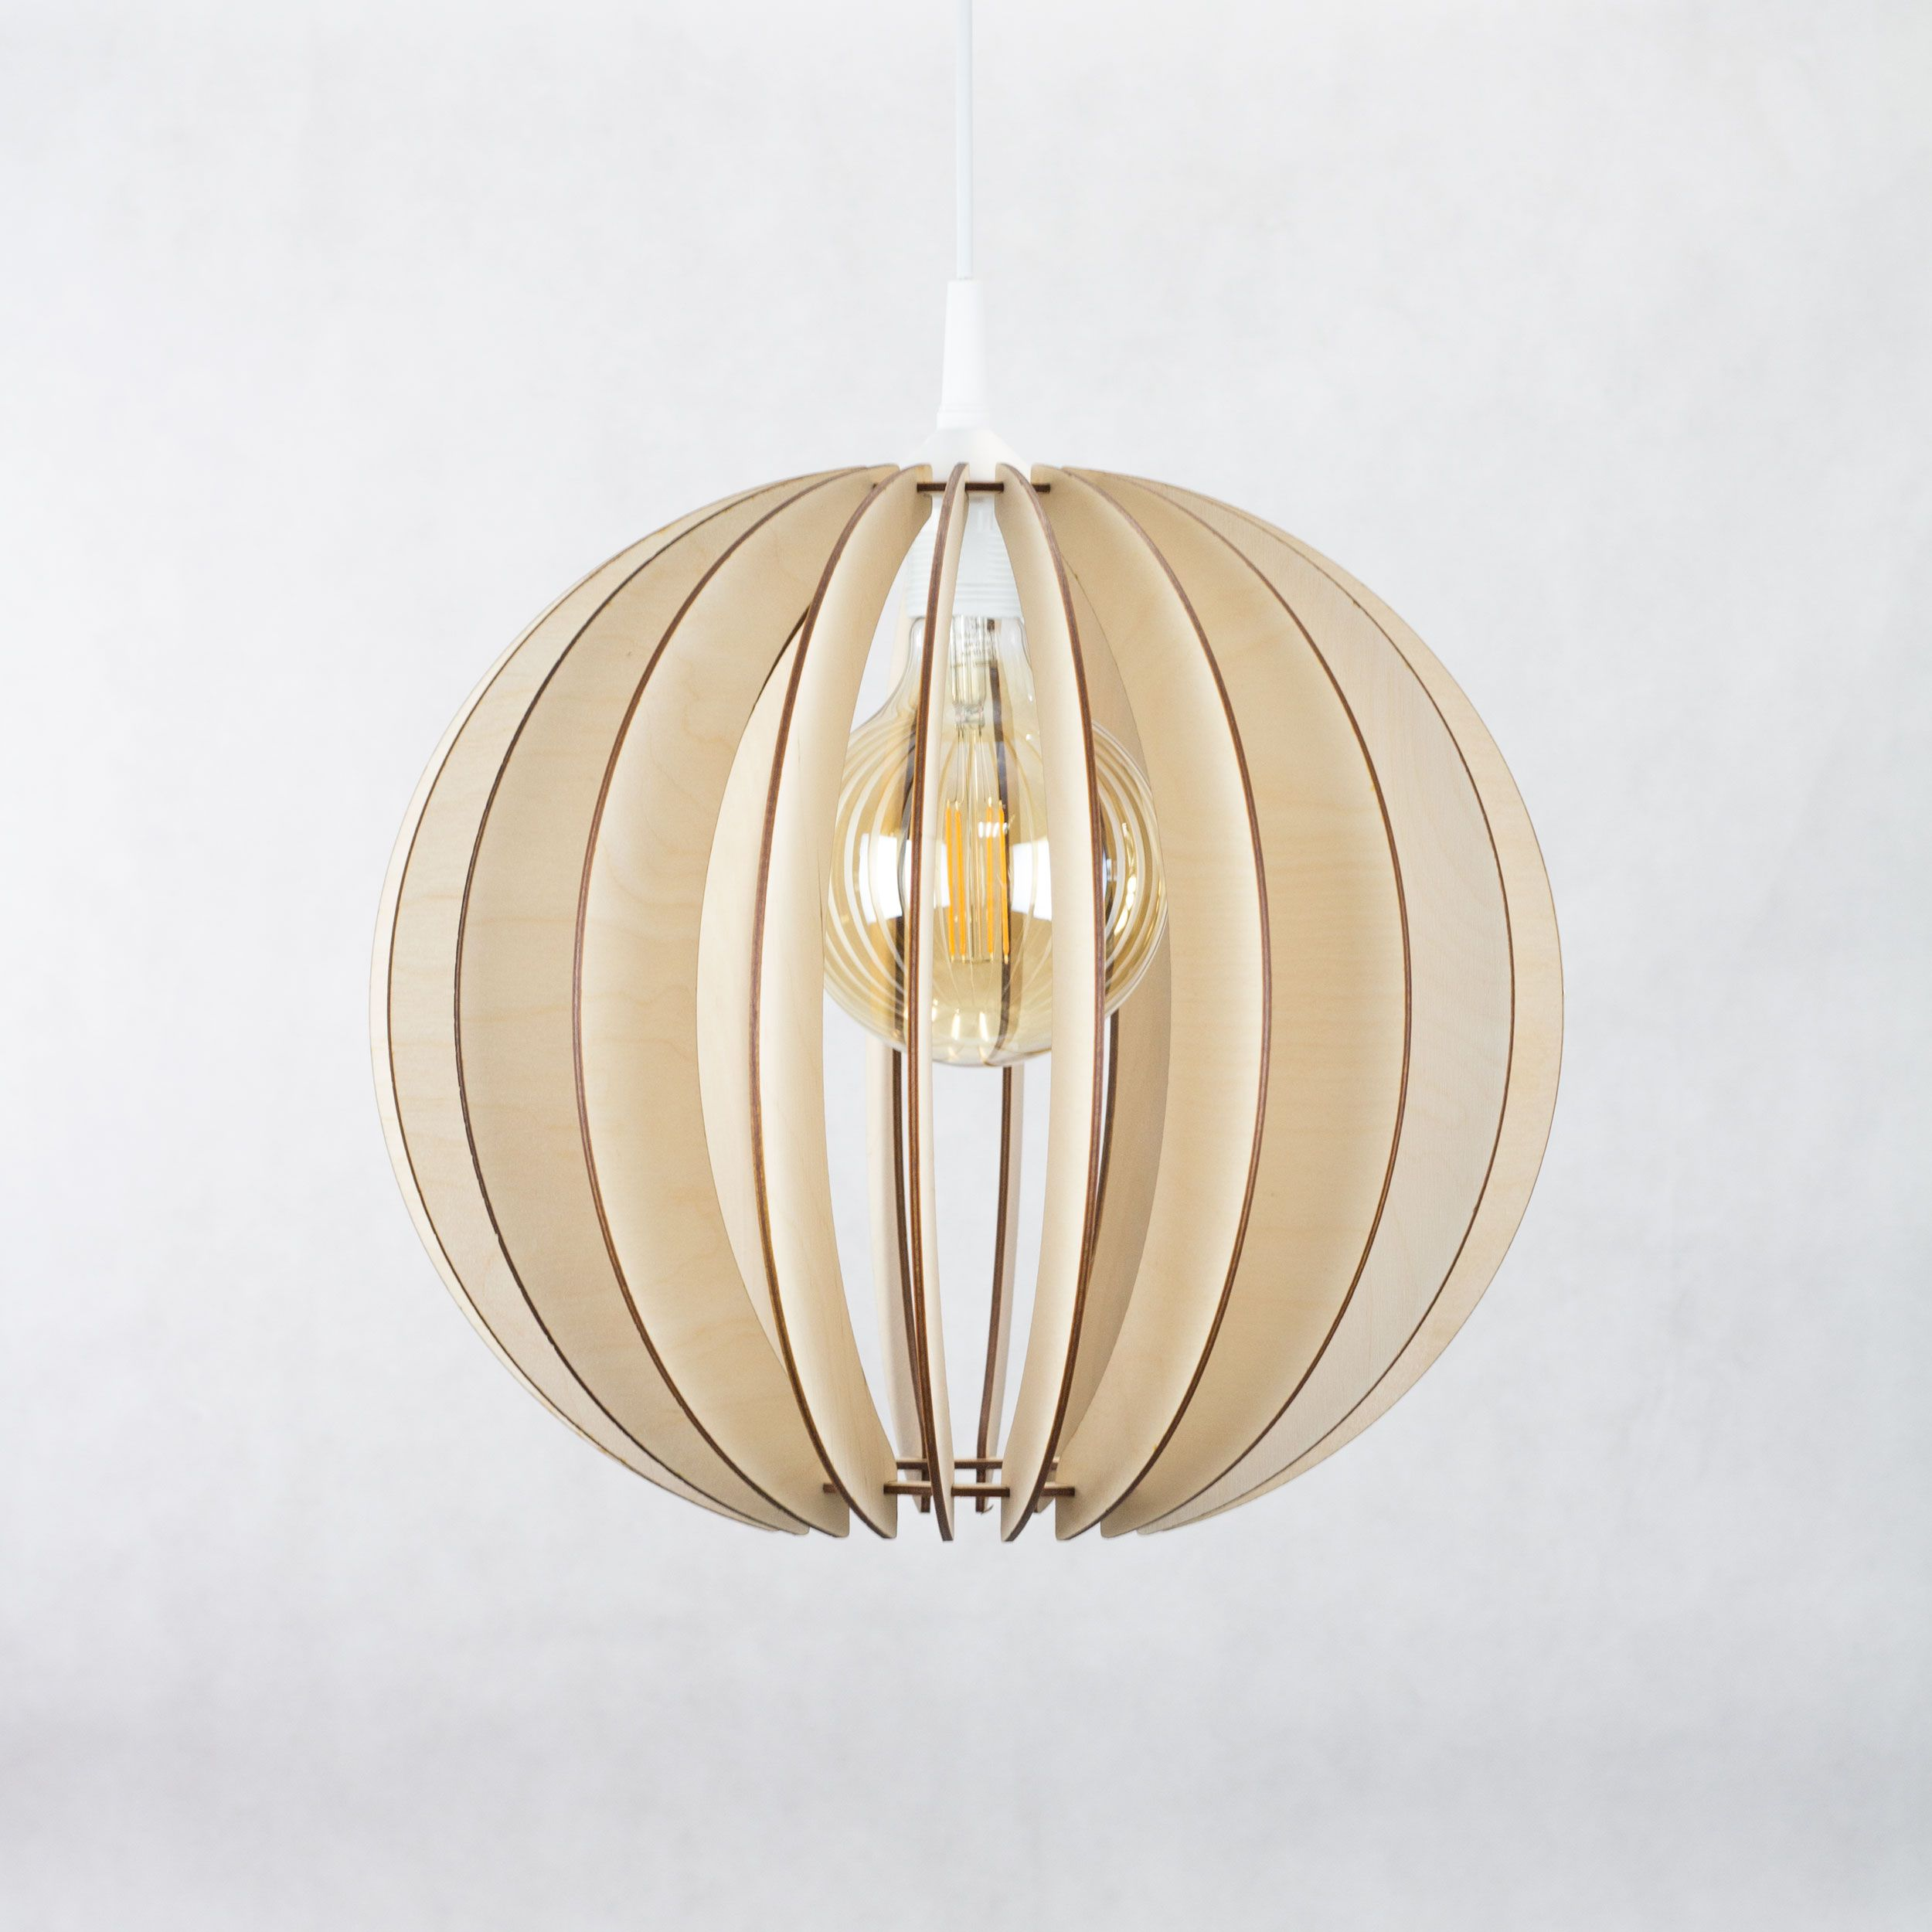 Round Nordic Style Ceiling Light Wooden Lamp Hanging Lamp Ceiling Light Lamp Shade Scandinavian Design Includes Cord Set Ceiling Lights Lamp Light Light Fittings